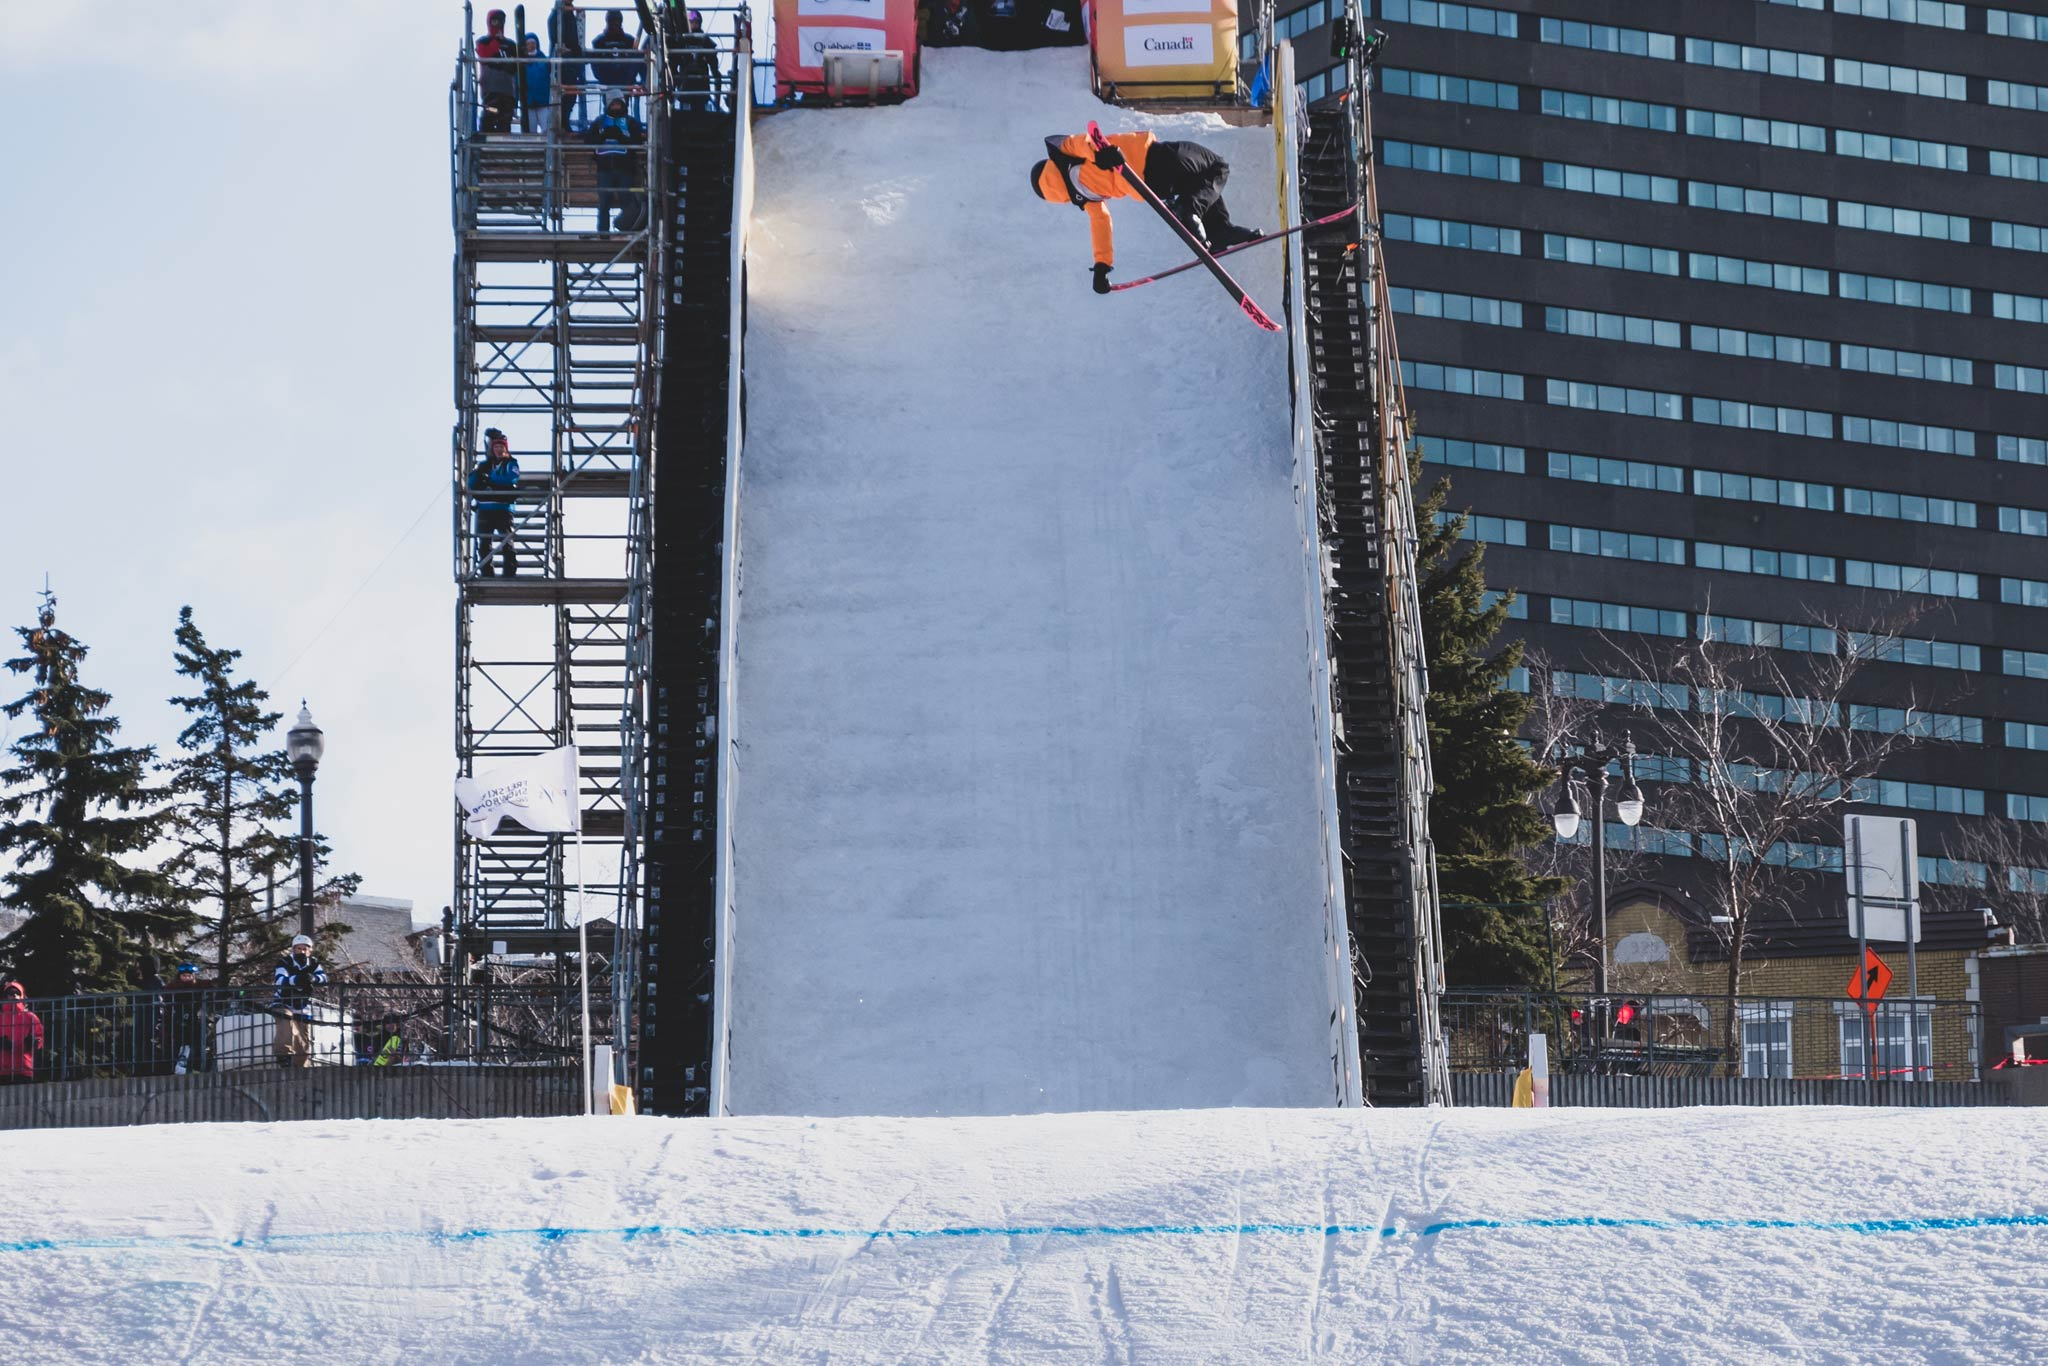 FIS Freestyle Big Air World Cup 18/19 #3: Quebec City (CAN) - Müllauer siegt, Kühnel wird Zweite - Rider: Kea Kühnel (GER) - Foto: FIS Freestyle